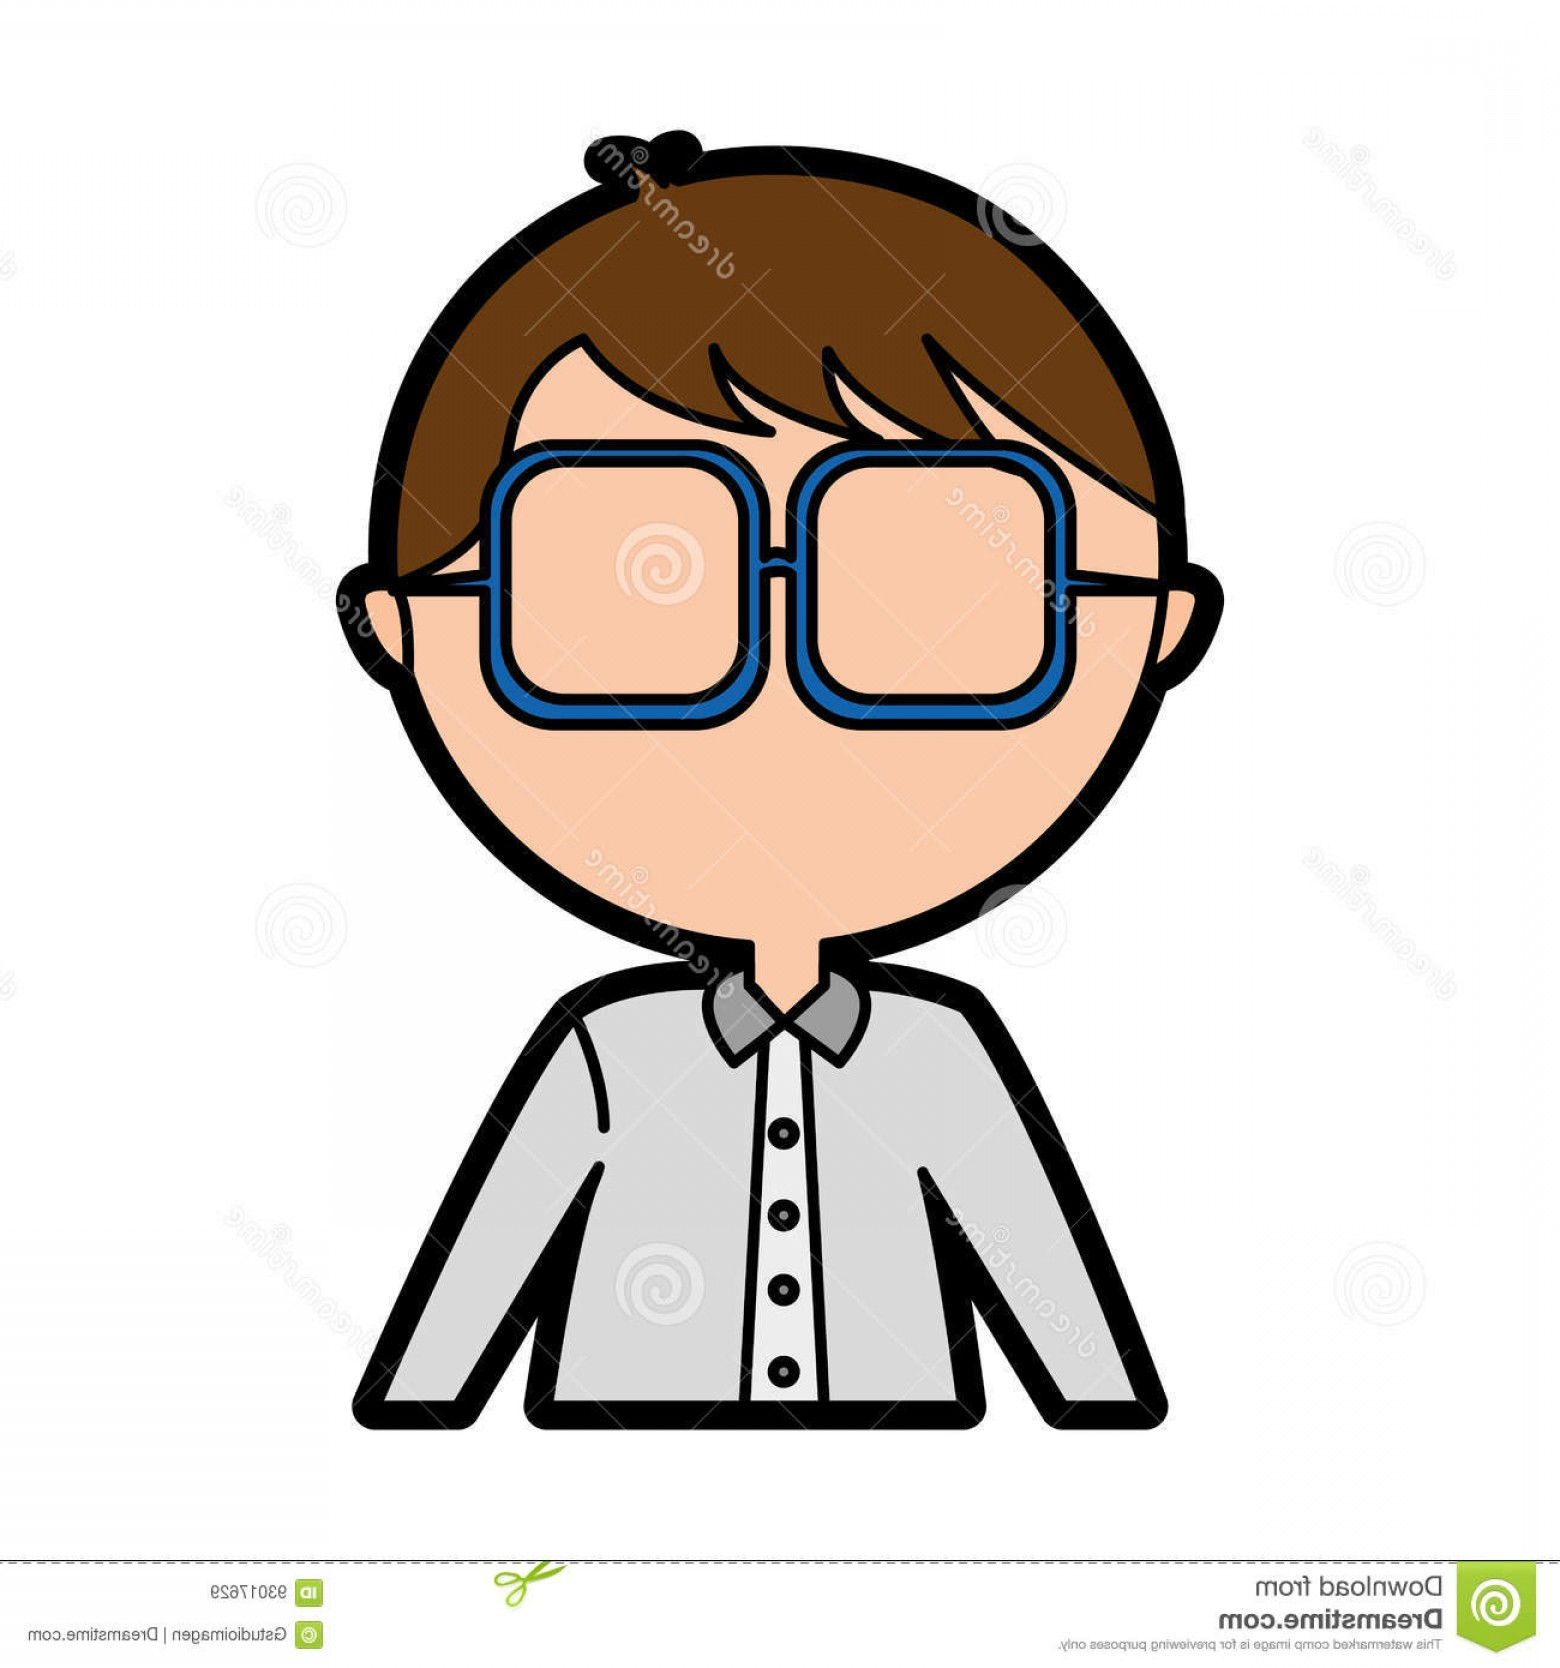 Nerd Vector: Stock Illustration Male Nerd Avatar Character Vector Illustration Design Image